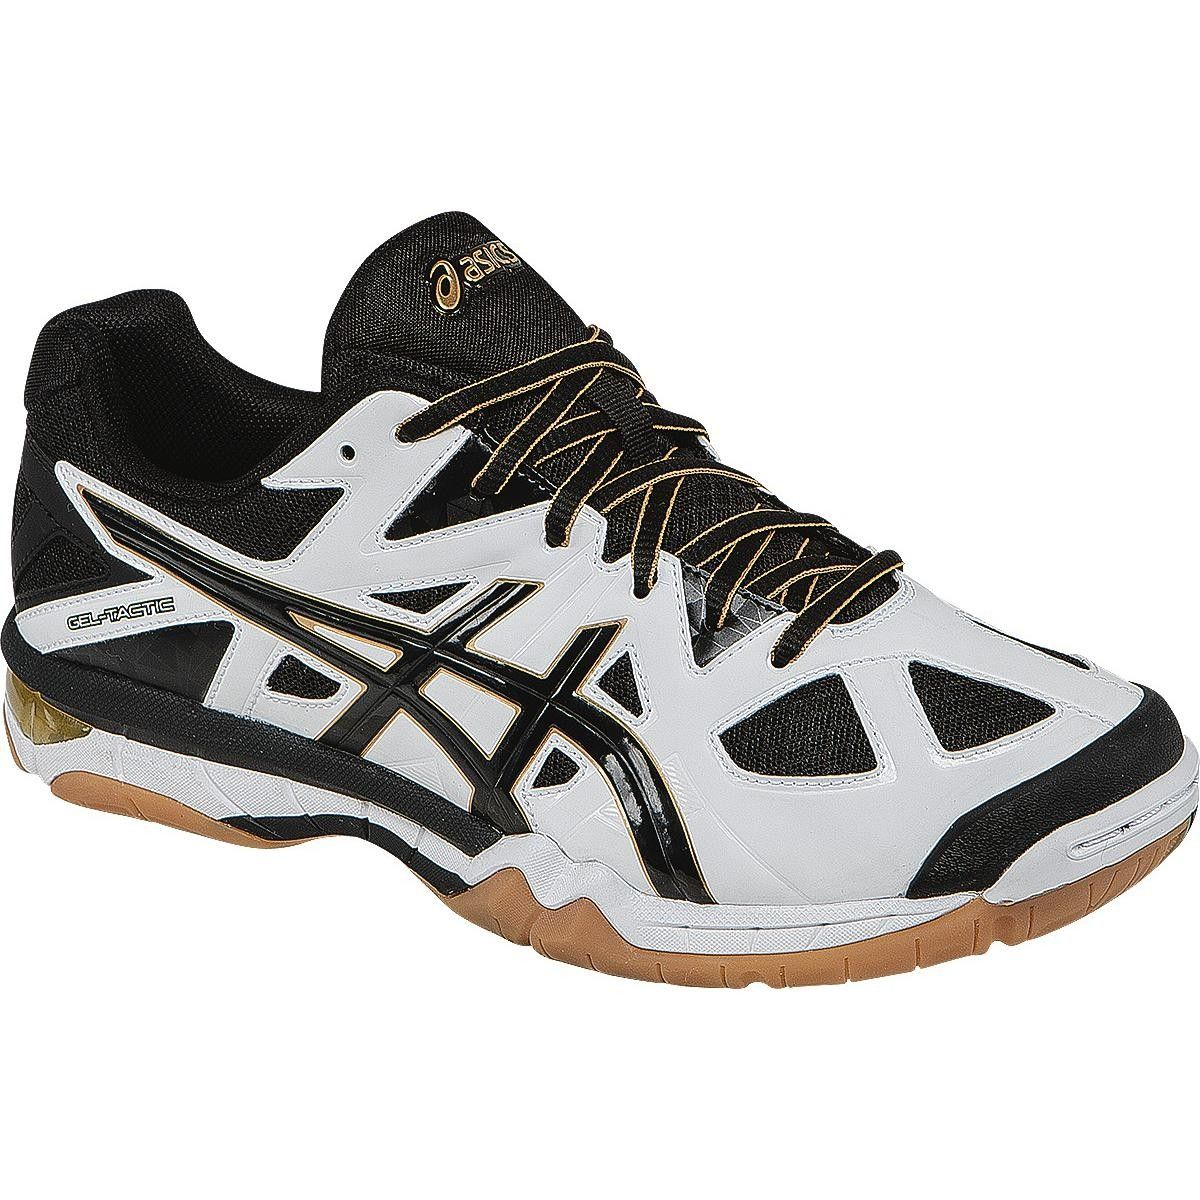 Asics Gel Tactic Men S Volleyball Shoes White Black Pale Gold Mens Volleyball Shoes Asics Mizuno Shoes